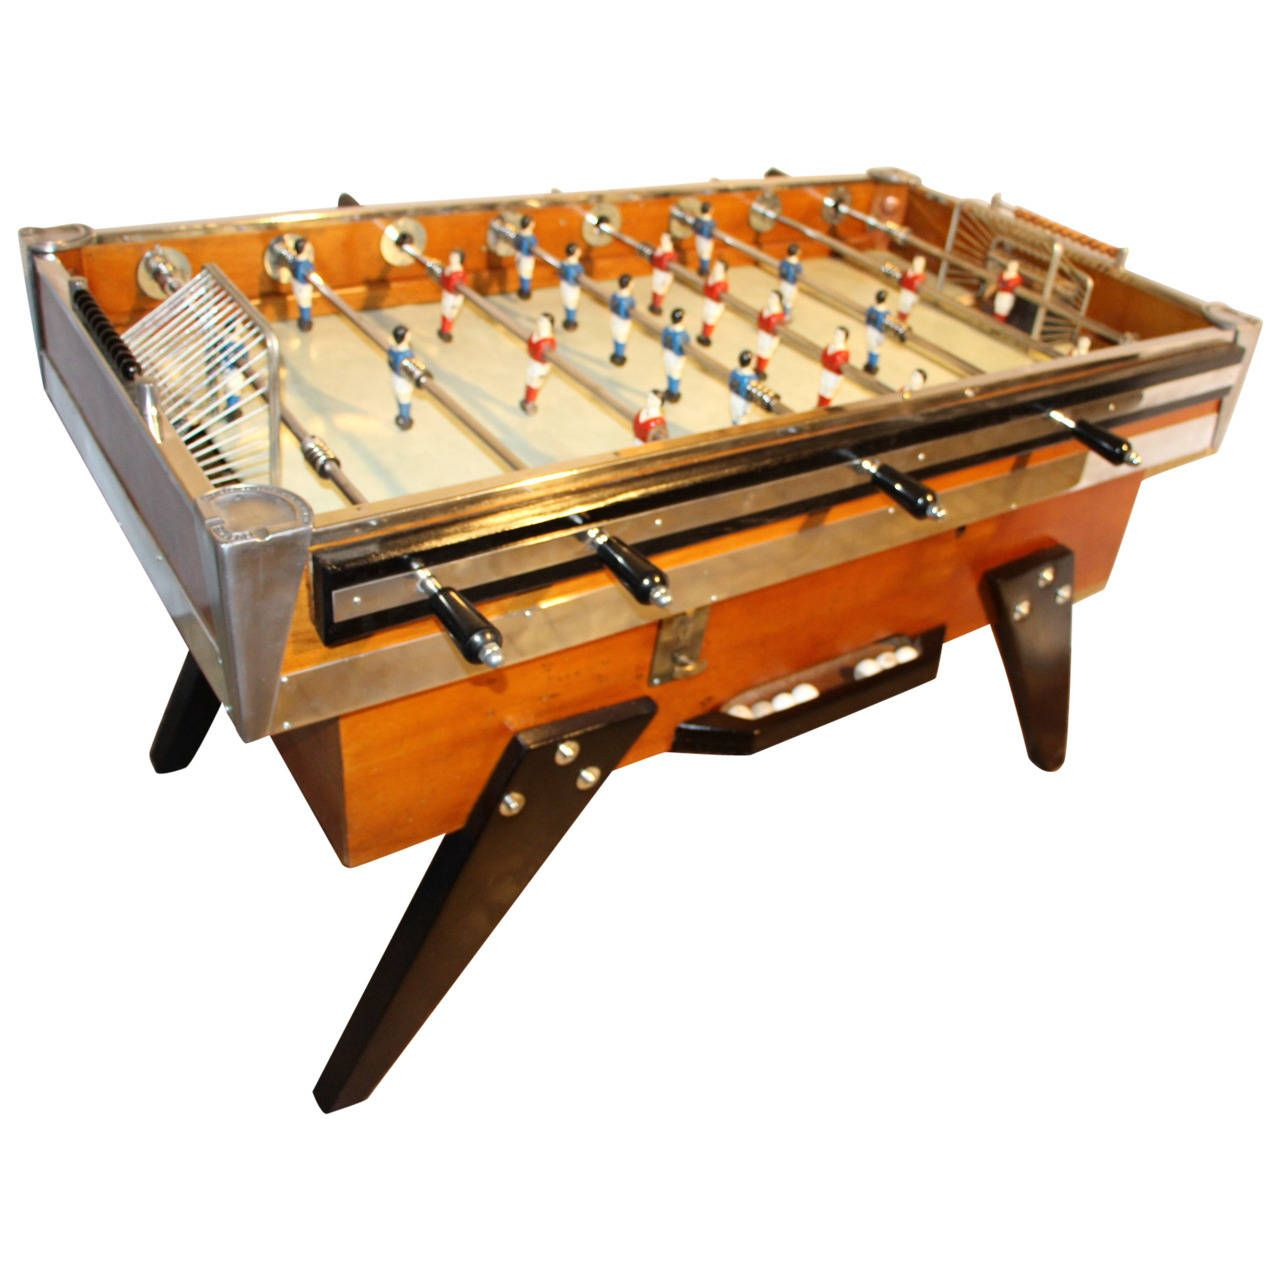 Beautiful French 1950s Cafe's Foosball Table From a